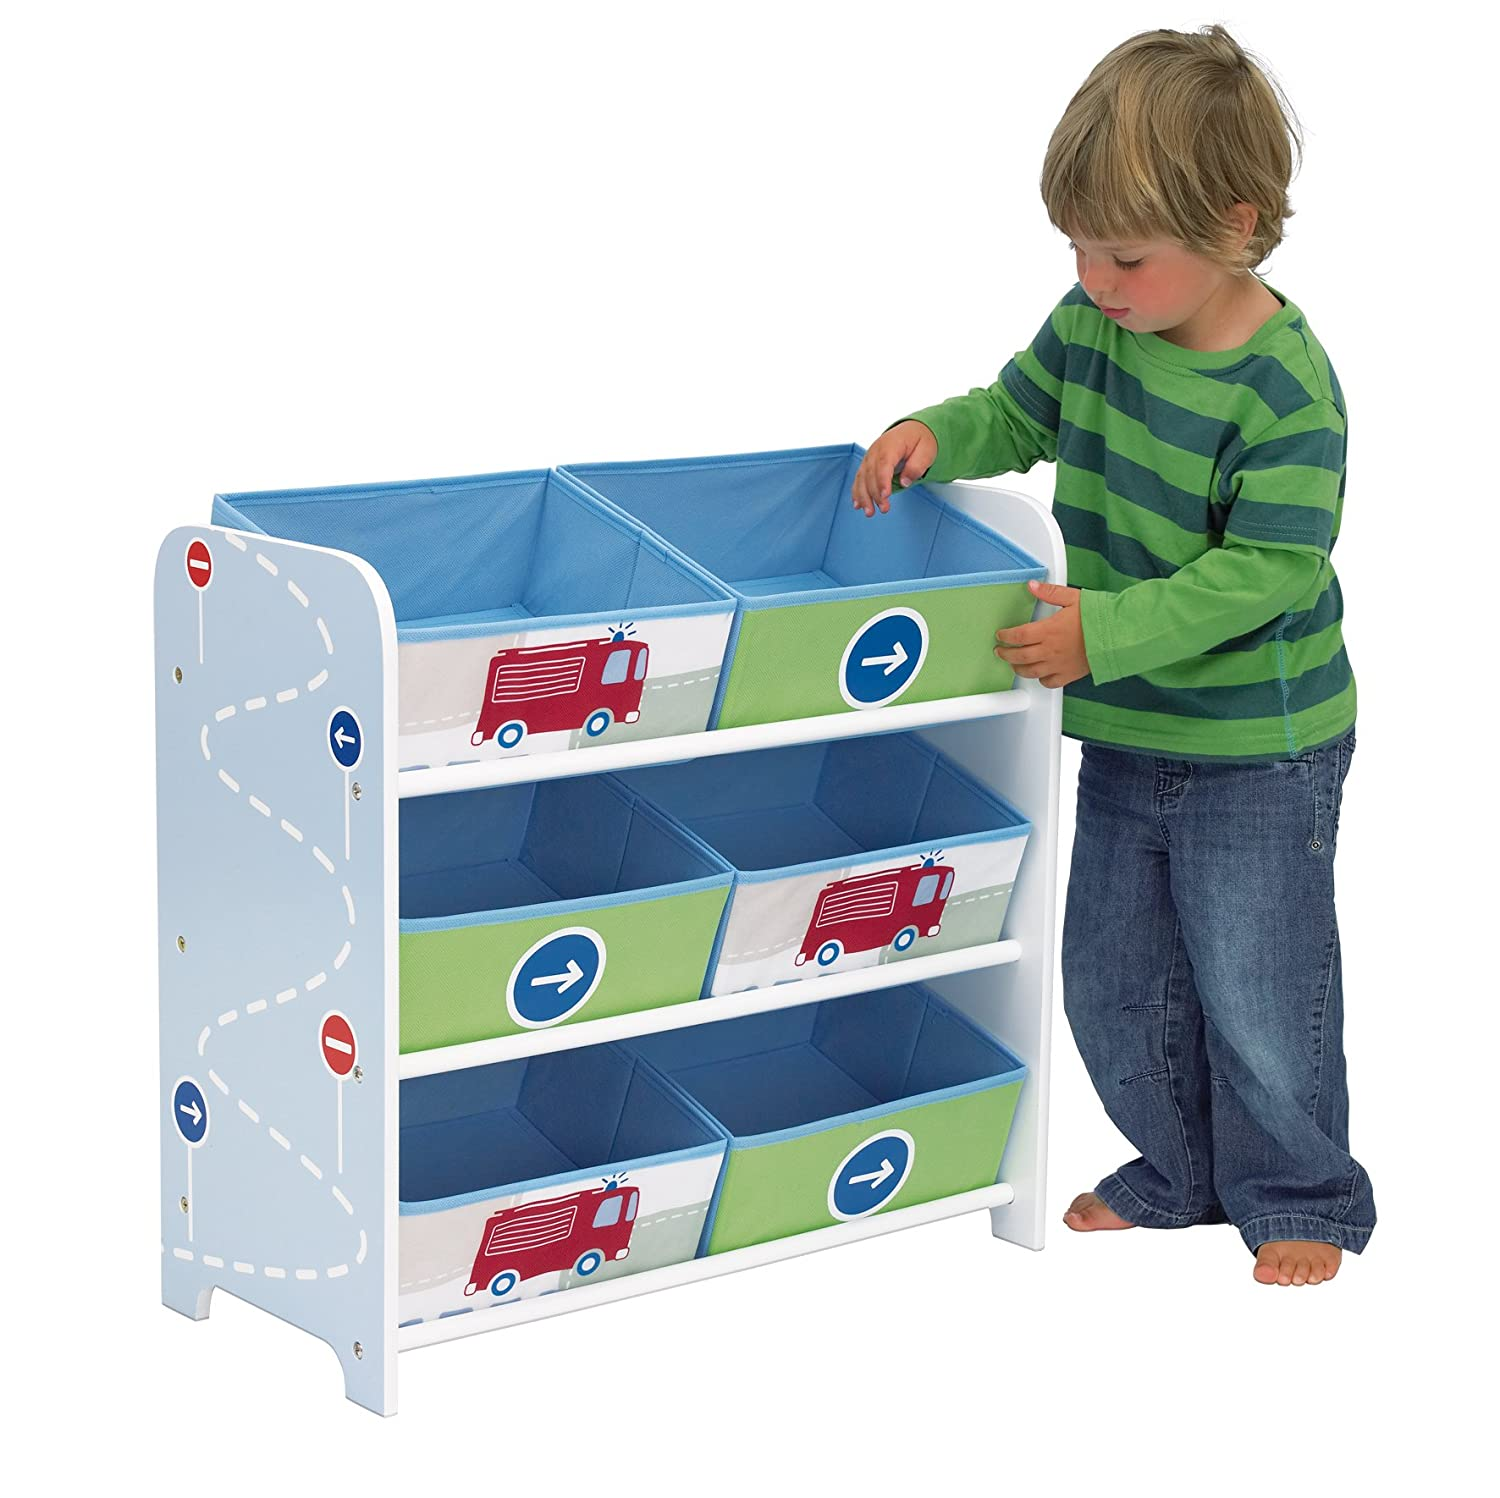 Merveilleux Vehicles Kids Bedroom Storage Unit With 6 Bins By HelloHome: Amazon.co.uk:  Kitchen U0026 Home